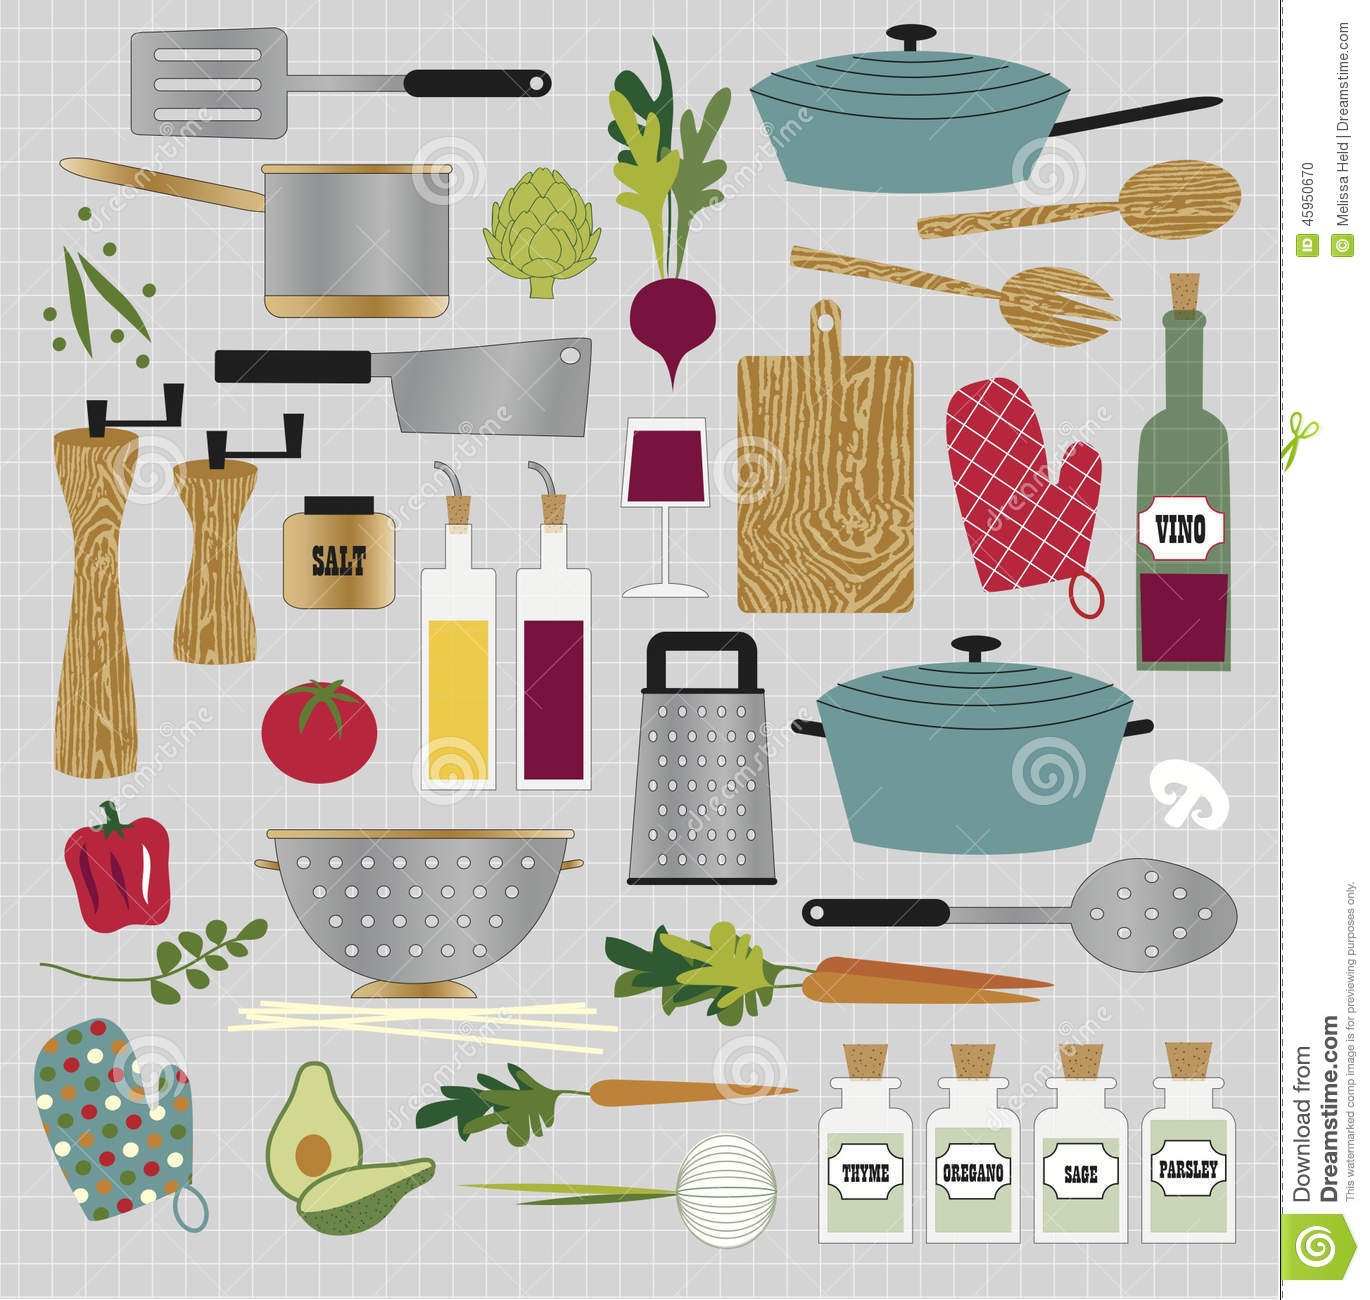 Clipart Küche Kitchen Clipart Stock Vector. Illustration Of Including